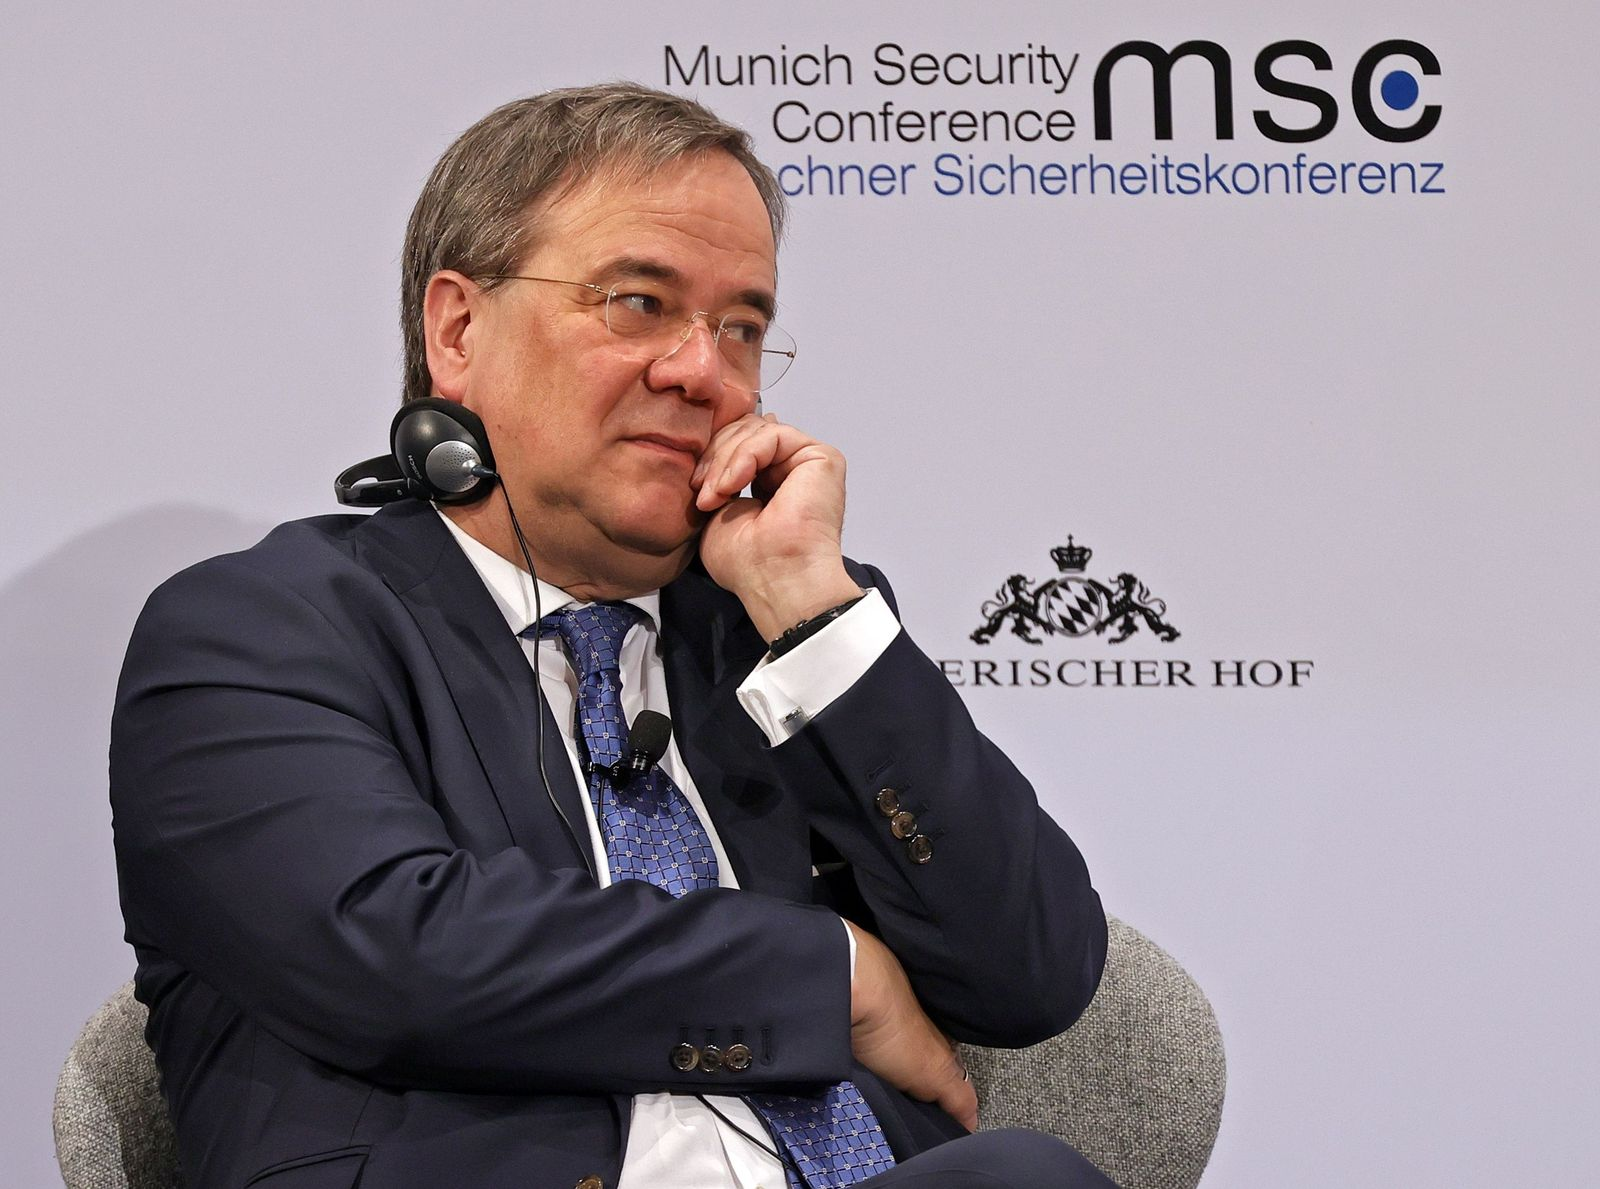 Munich Security Conference 2020, Germany - 16 Feb 2020